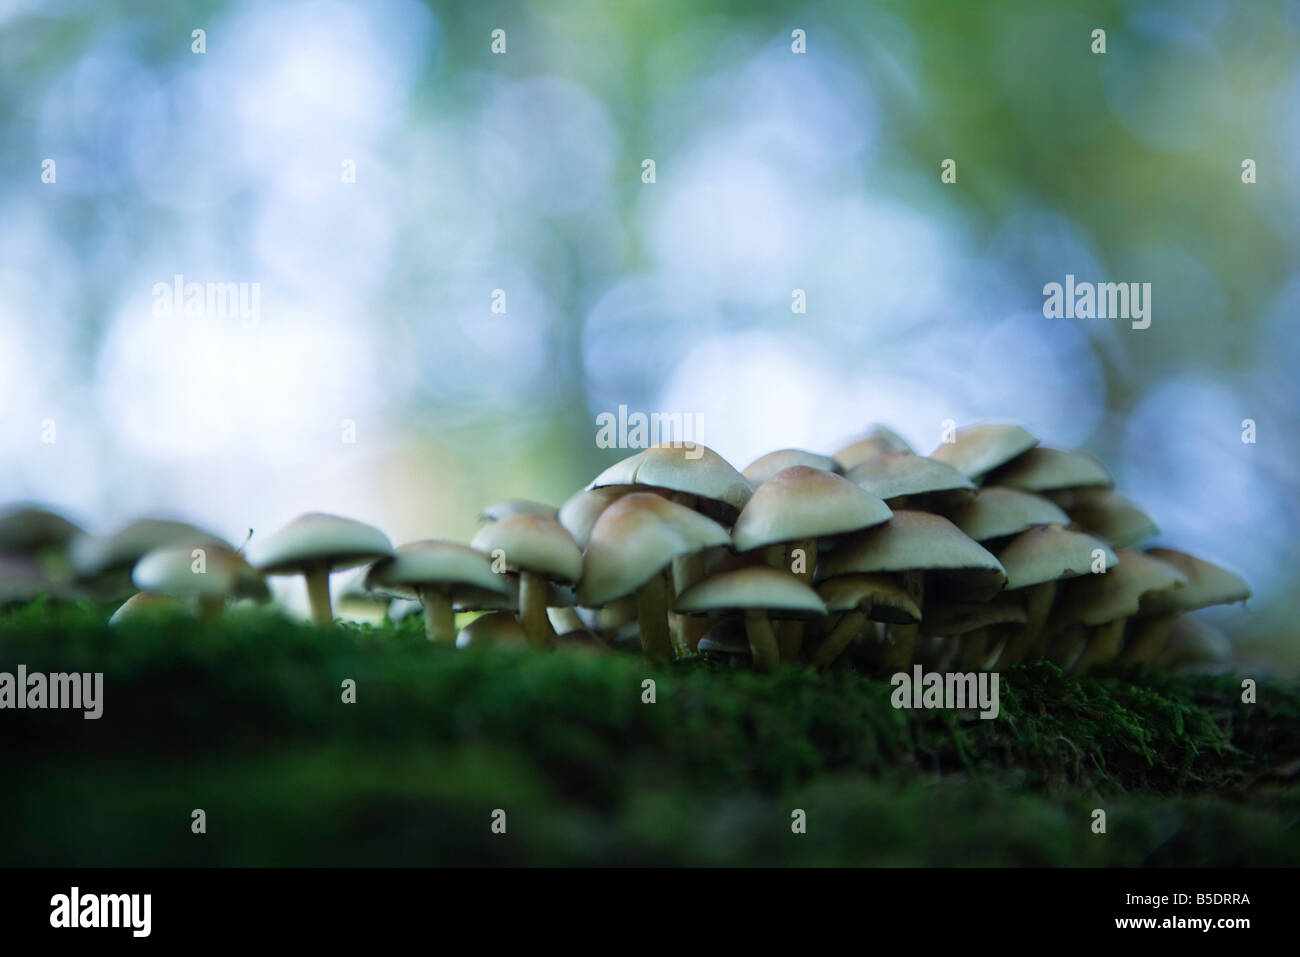 Large cluster of mushrooms growing on moss, selective focus - Stock Image